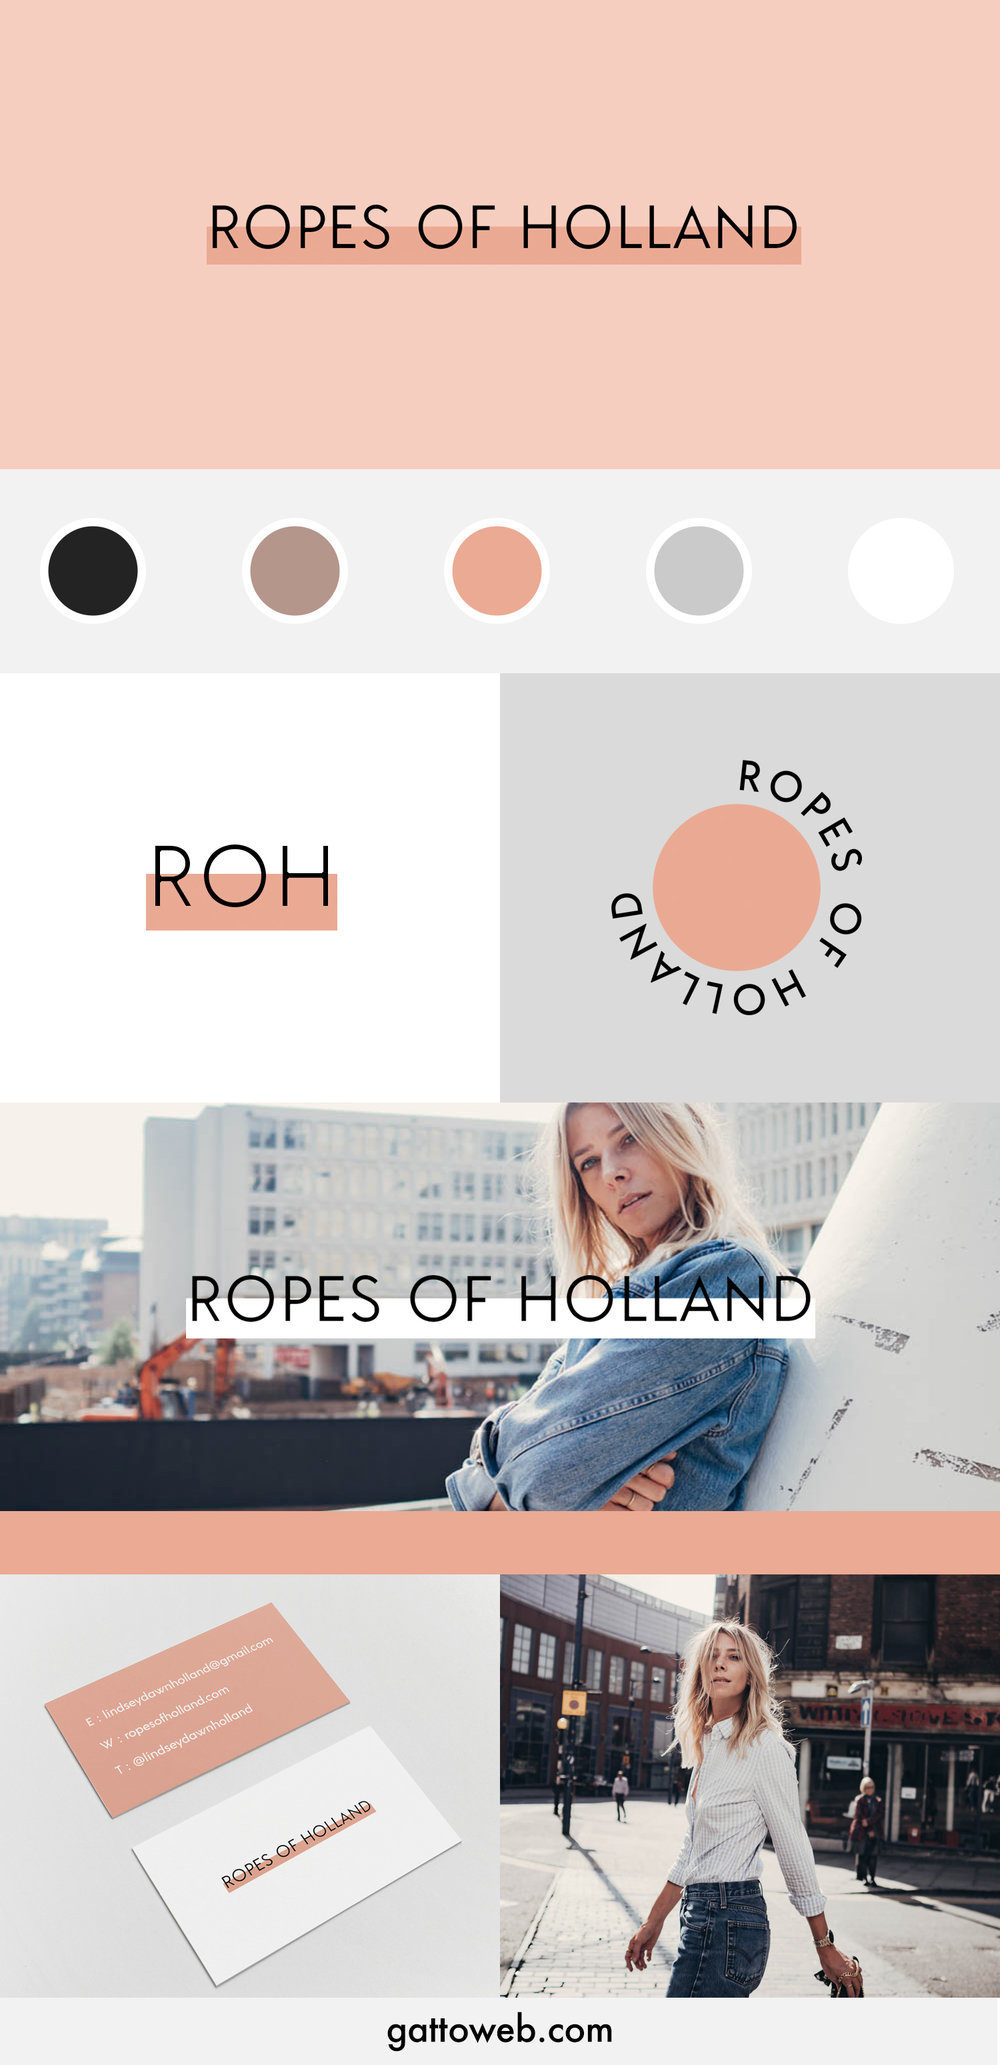 Ropes of Holland Branding Board | Peach Scandi Minimal Design | Gatto